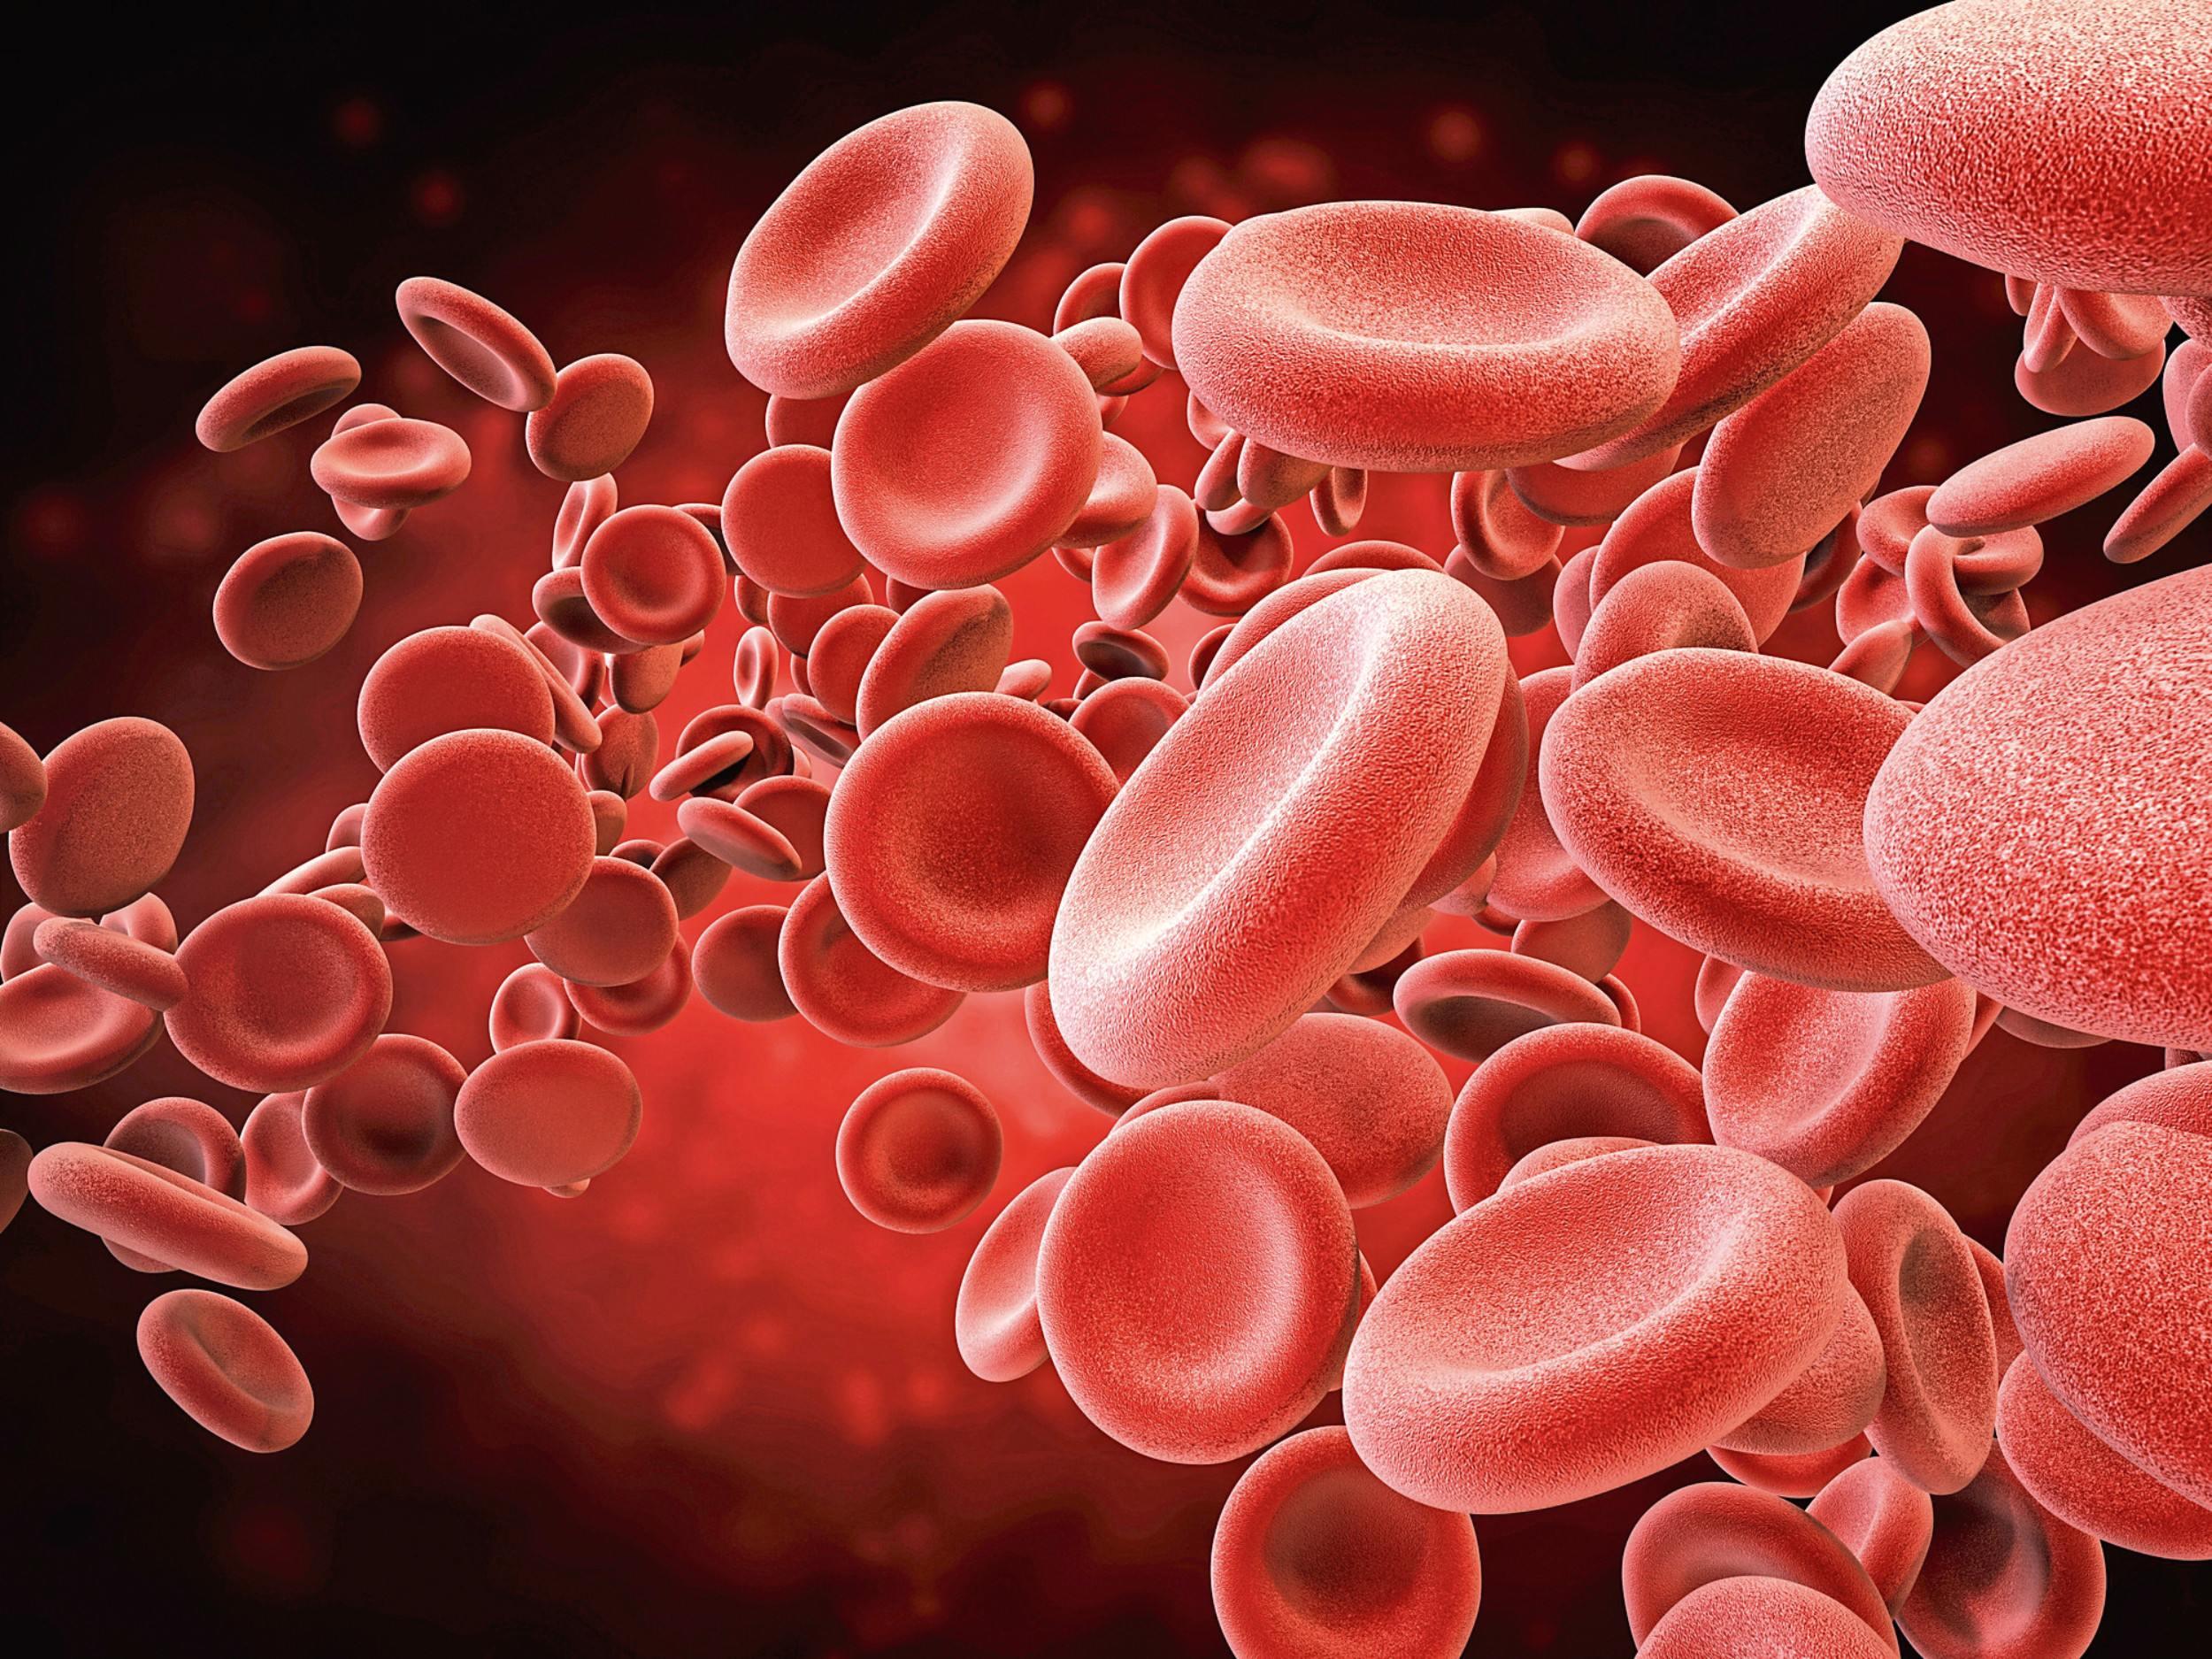 3d rendering red blood cells in vein.